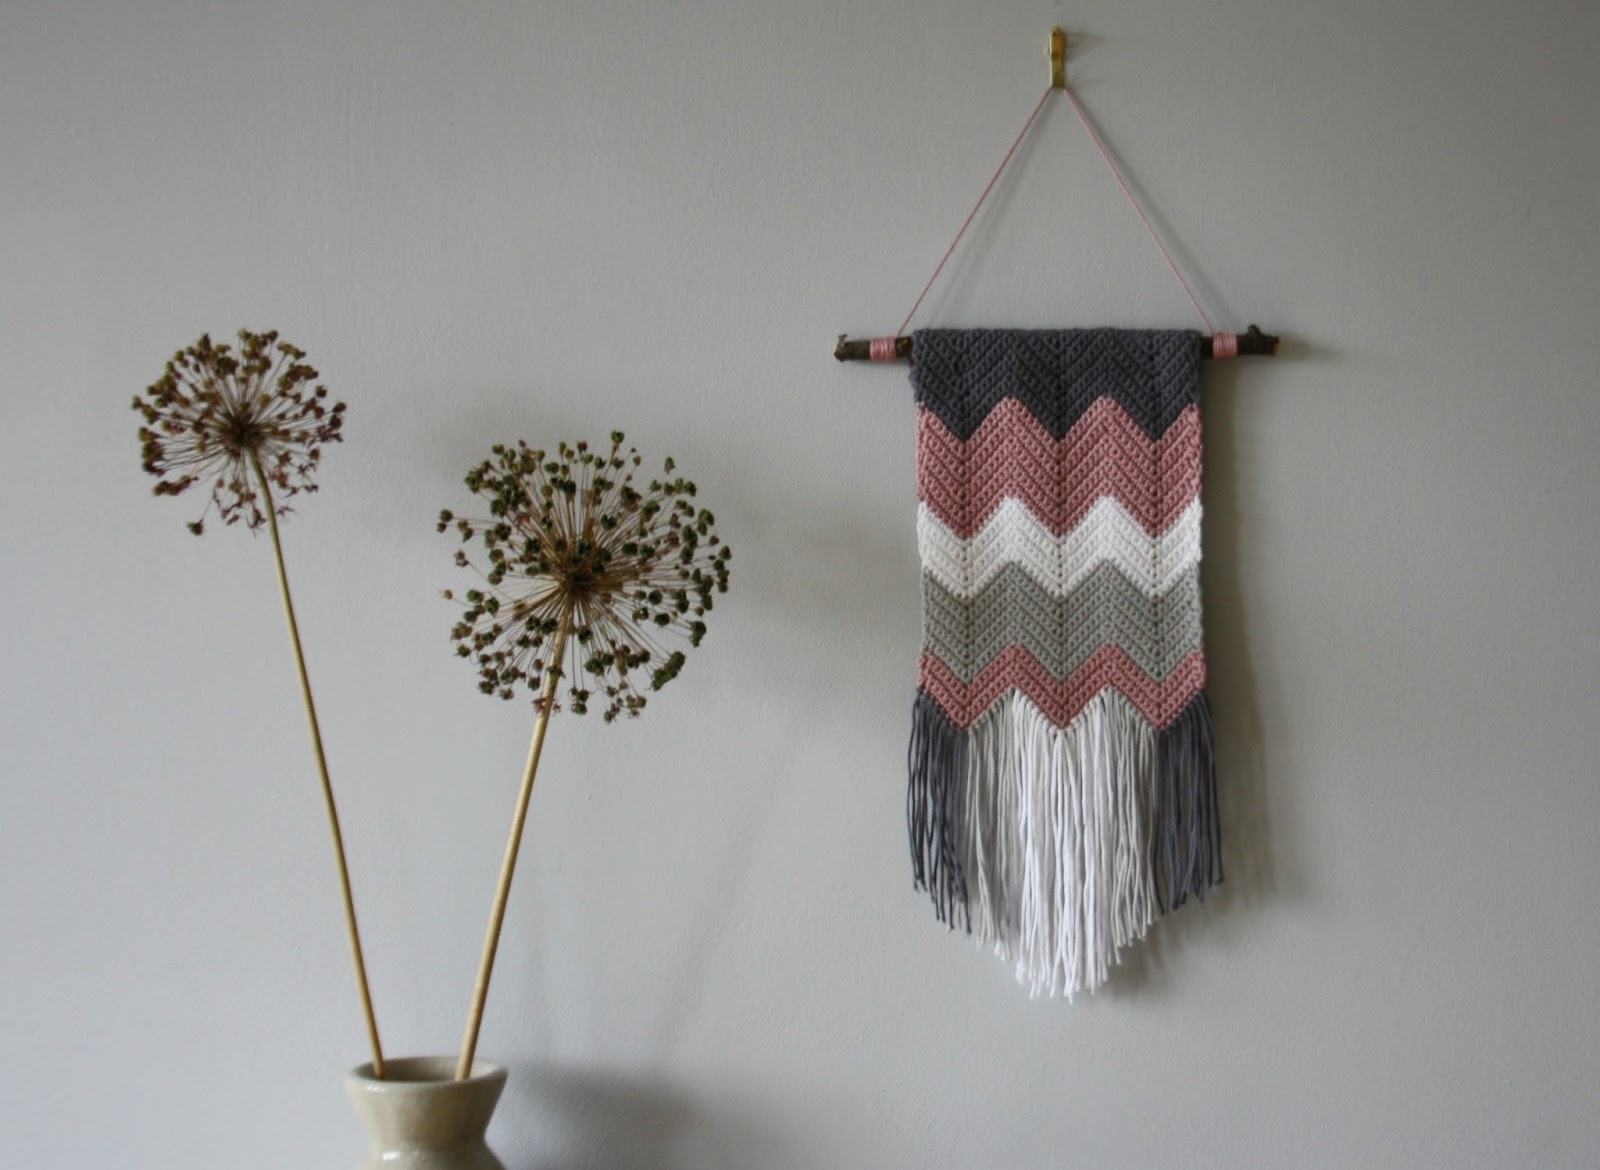 Crochet Wall Hanging : Tales from a happy house.: A Crocheted Zigzag Wall Hanging